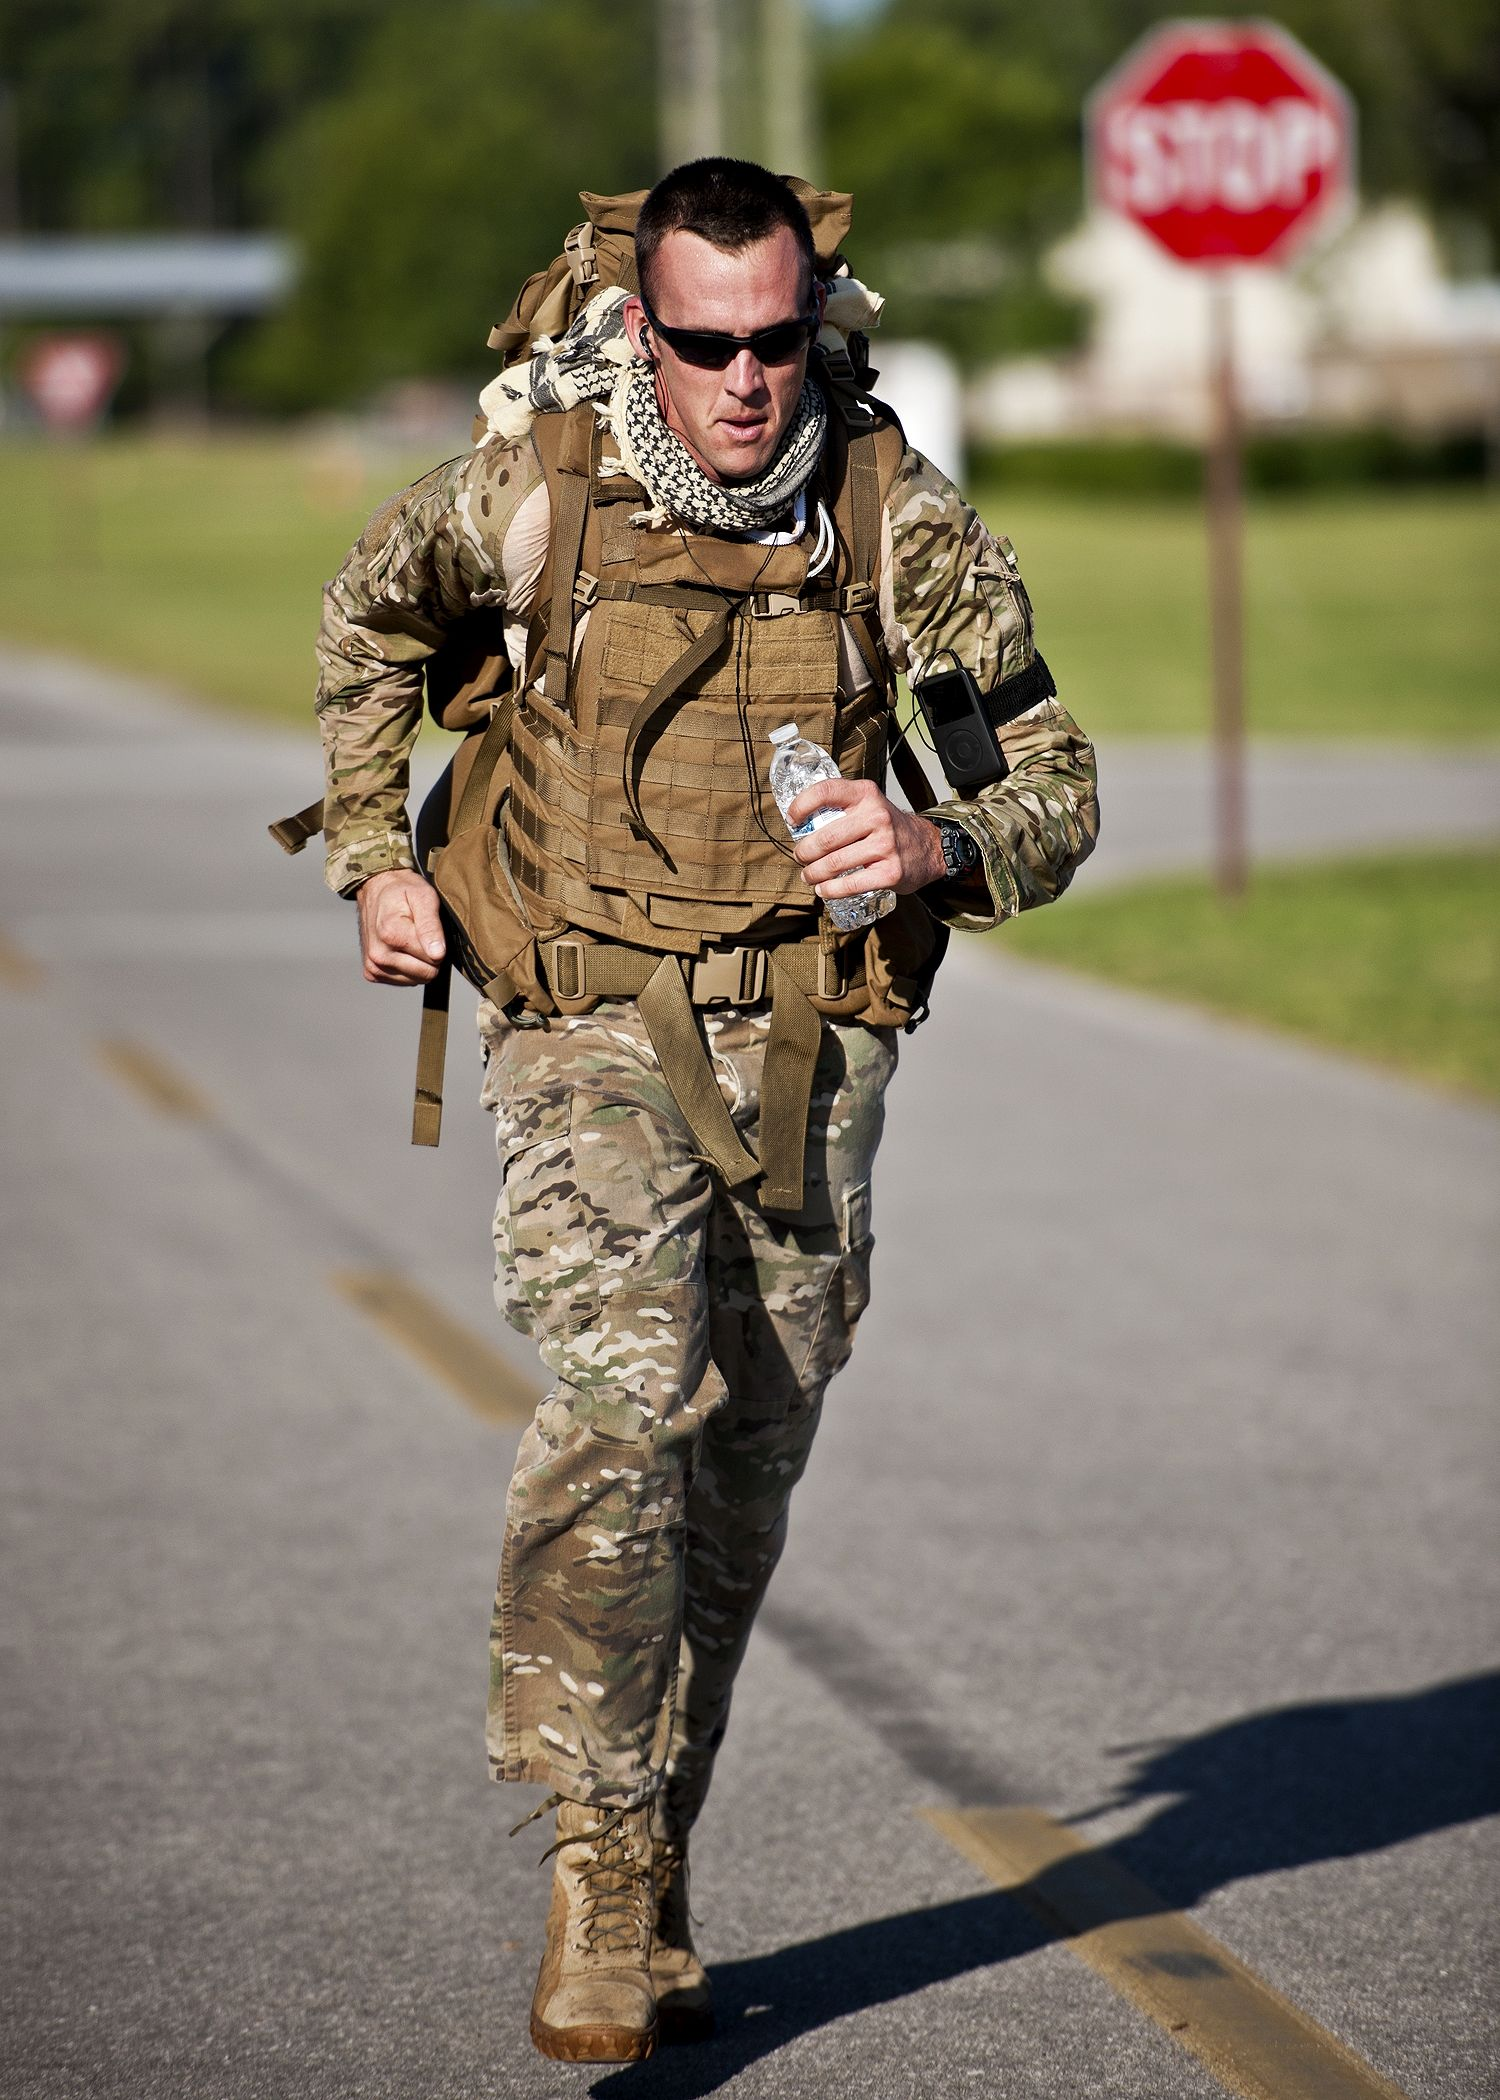 Pin by Canada on Male backpack | Military workout, Workout, Fitness